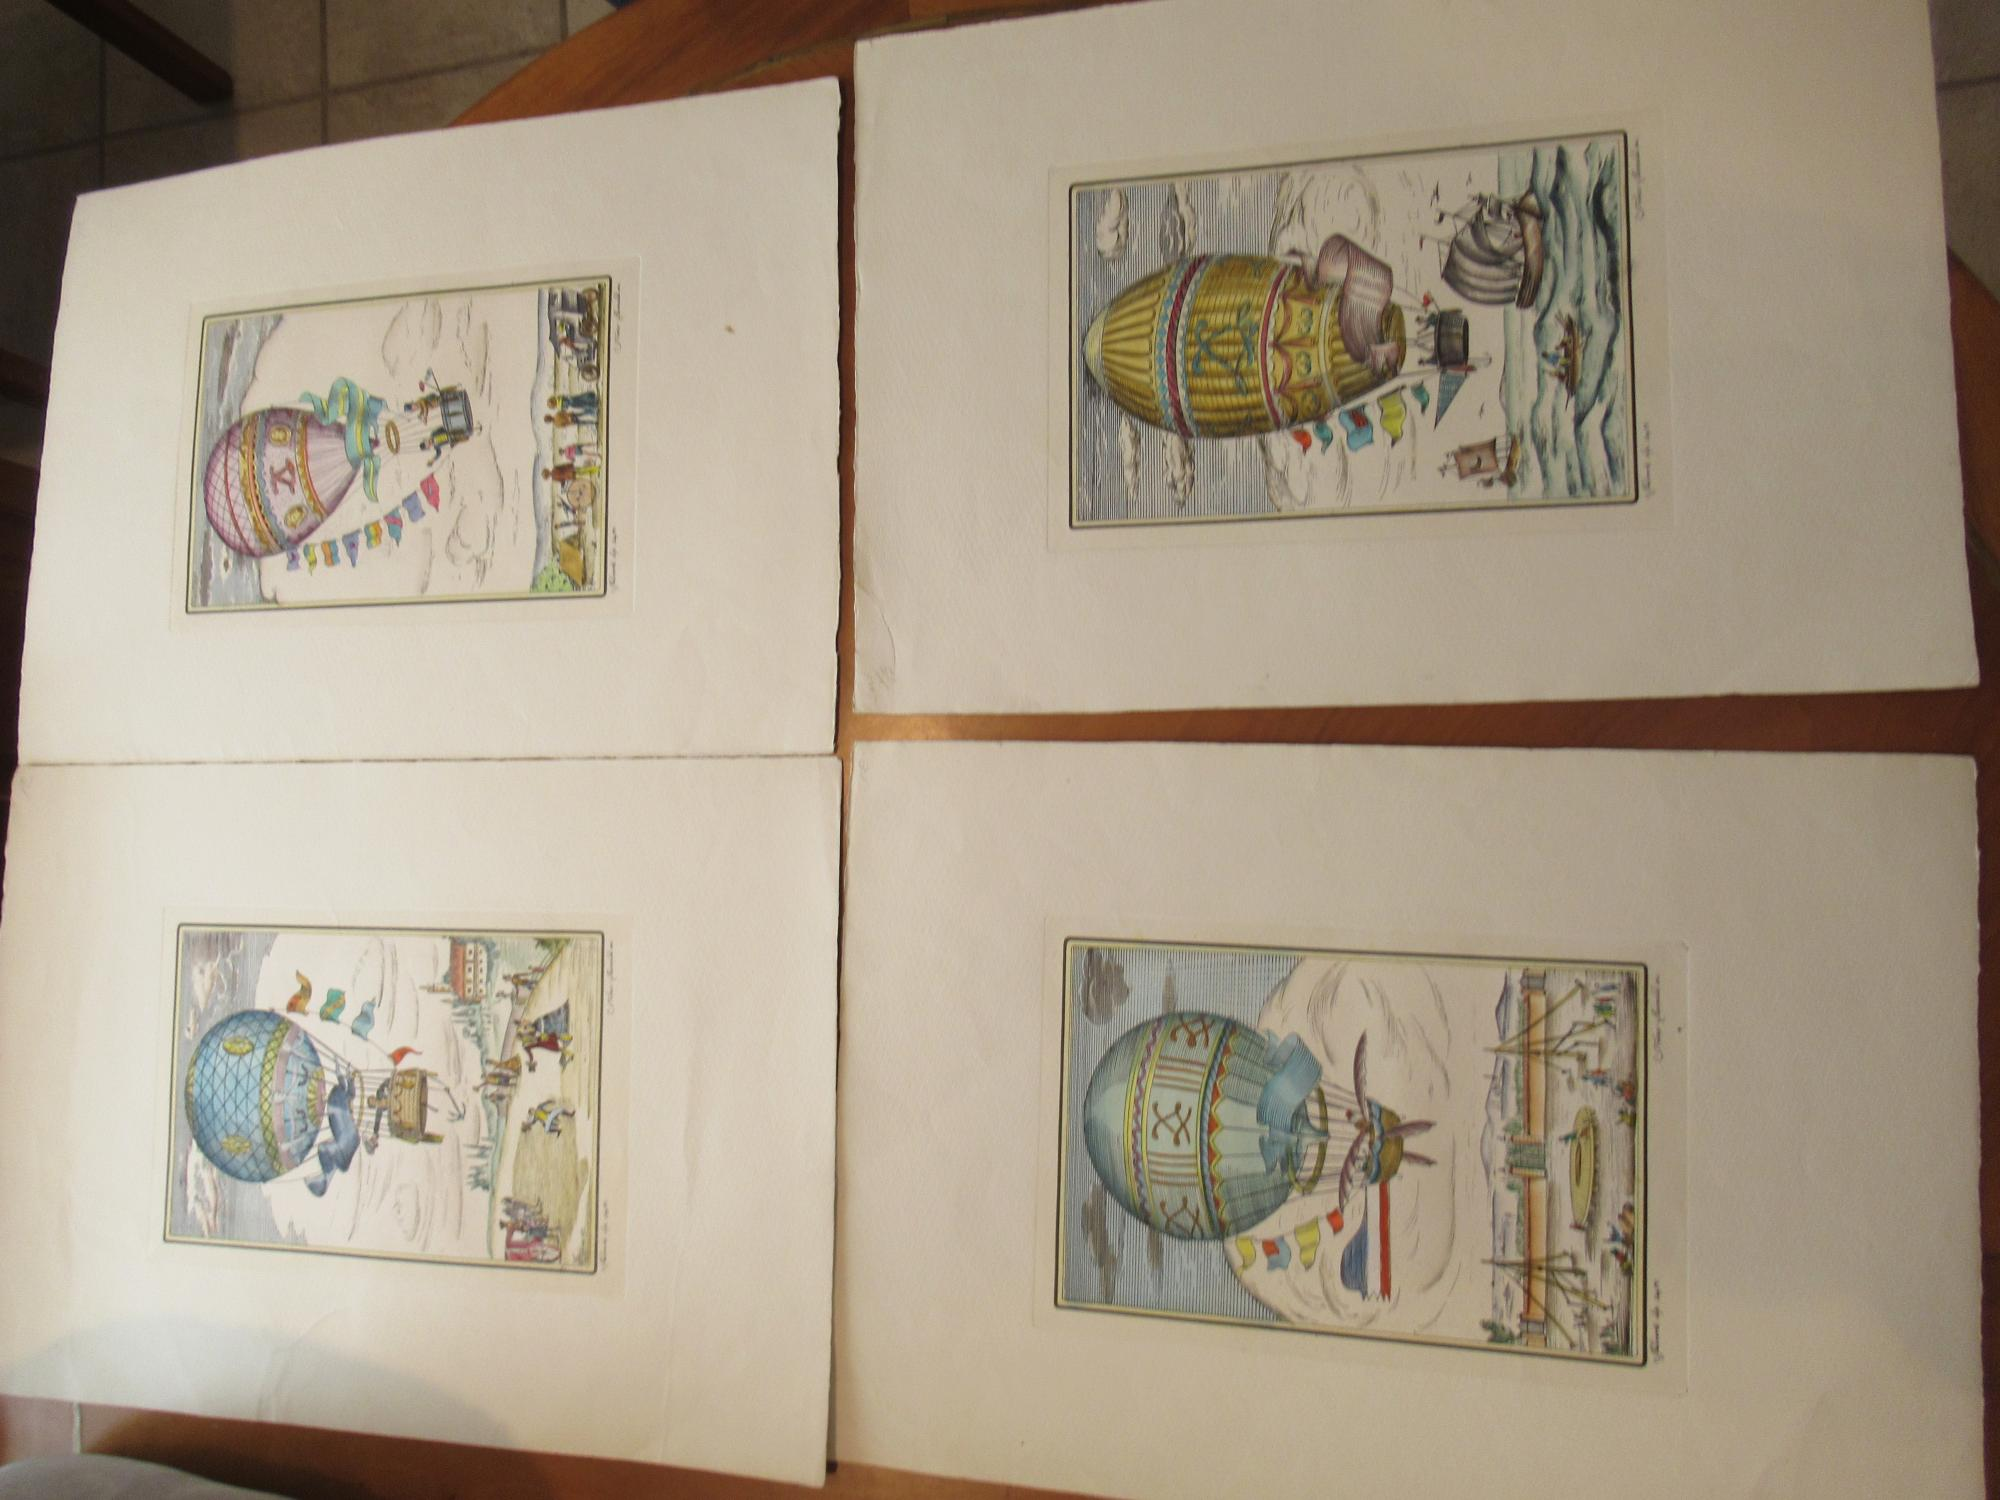 Ballooning (Four Humorous Colored Lithographs) Original Color Lithographs By Franco Raialdi Near Fine